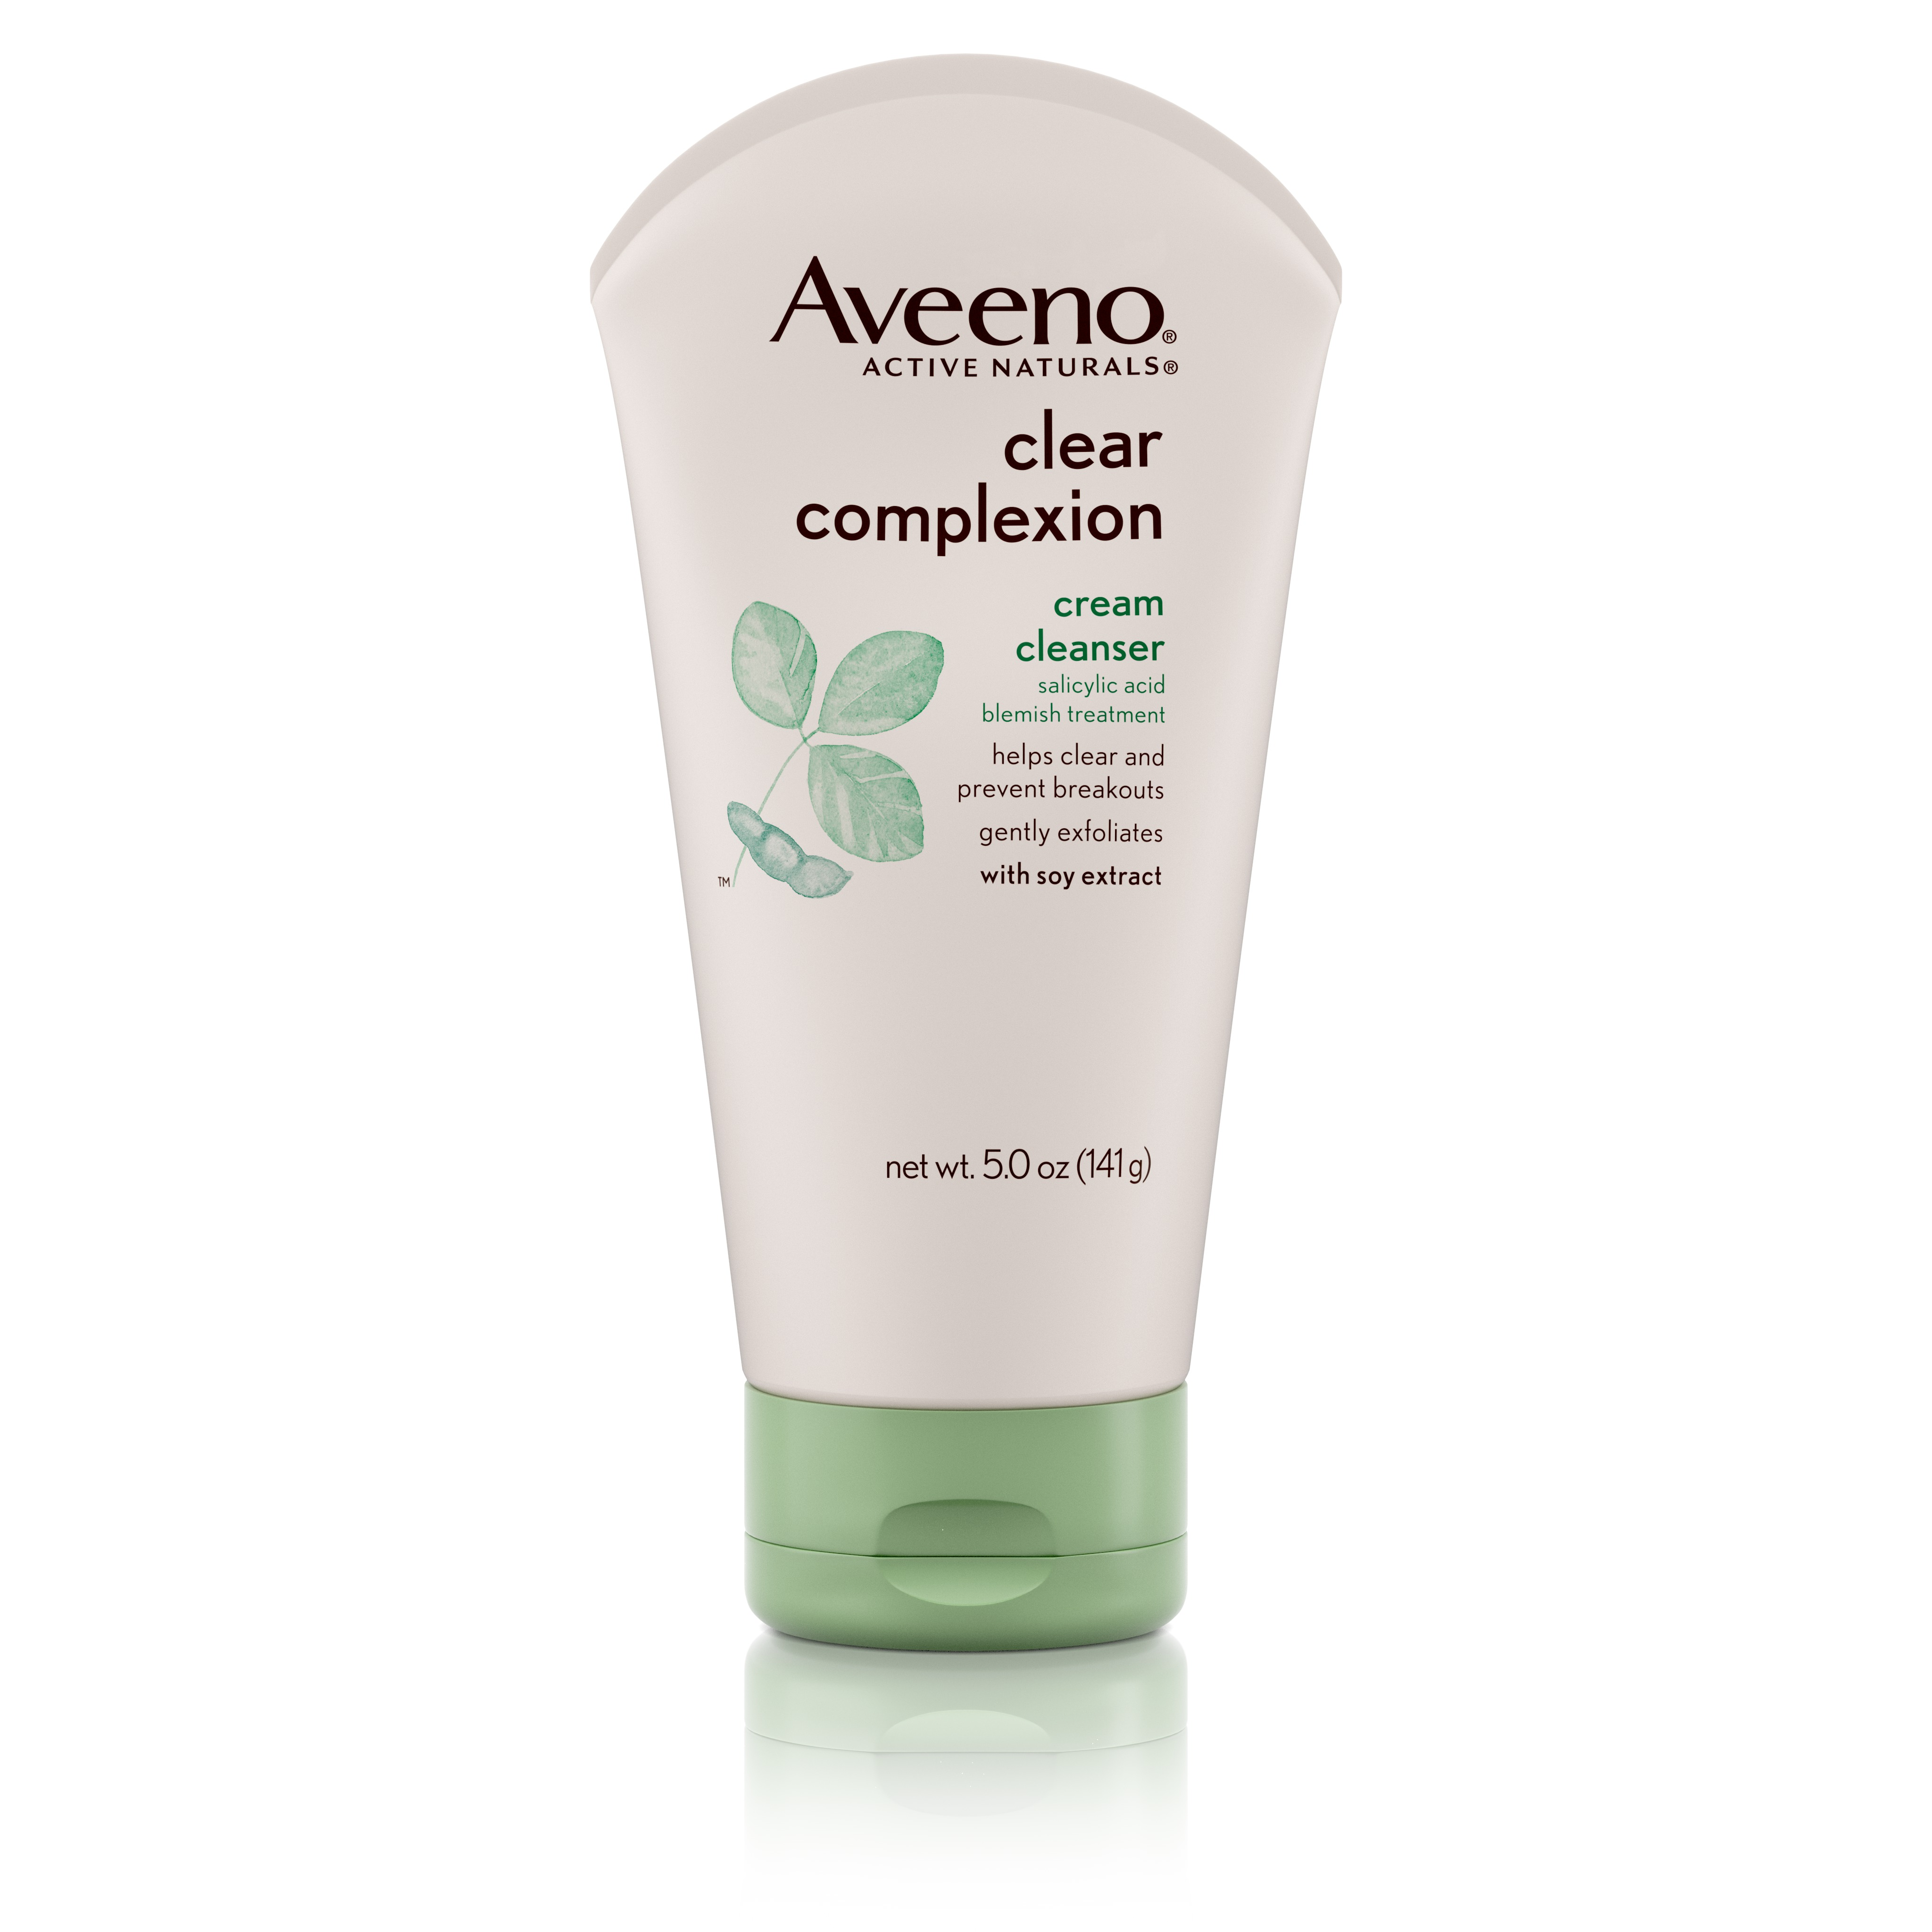 Assured, Aveeno facial cleansers